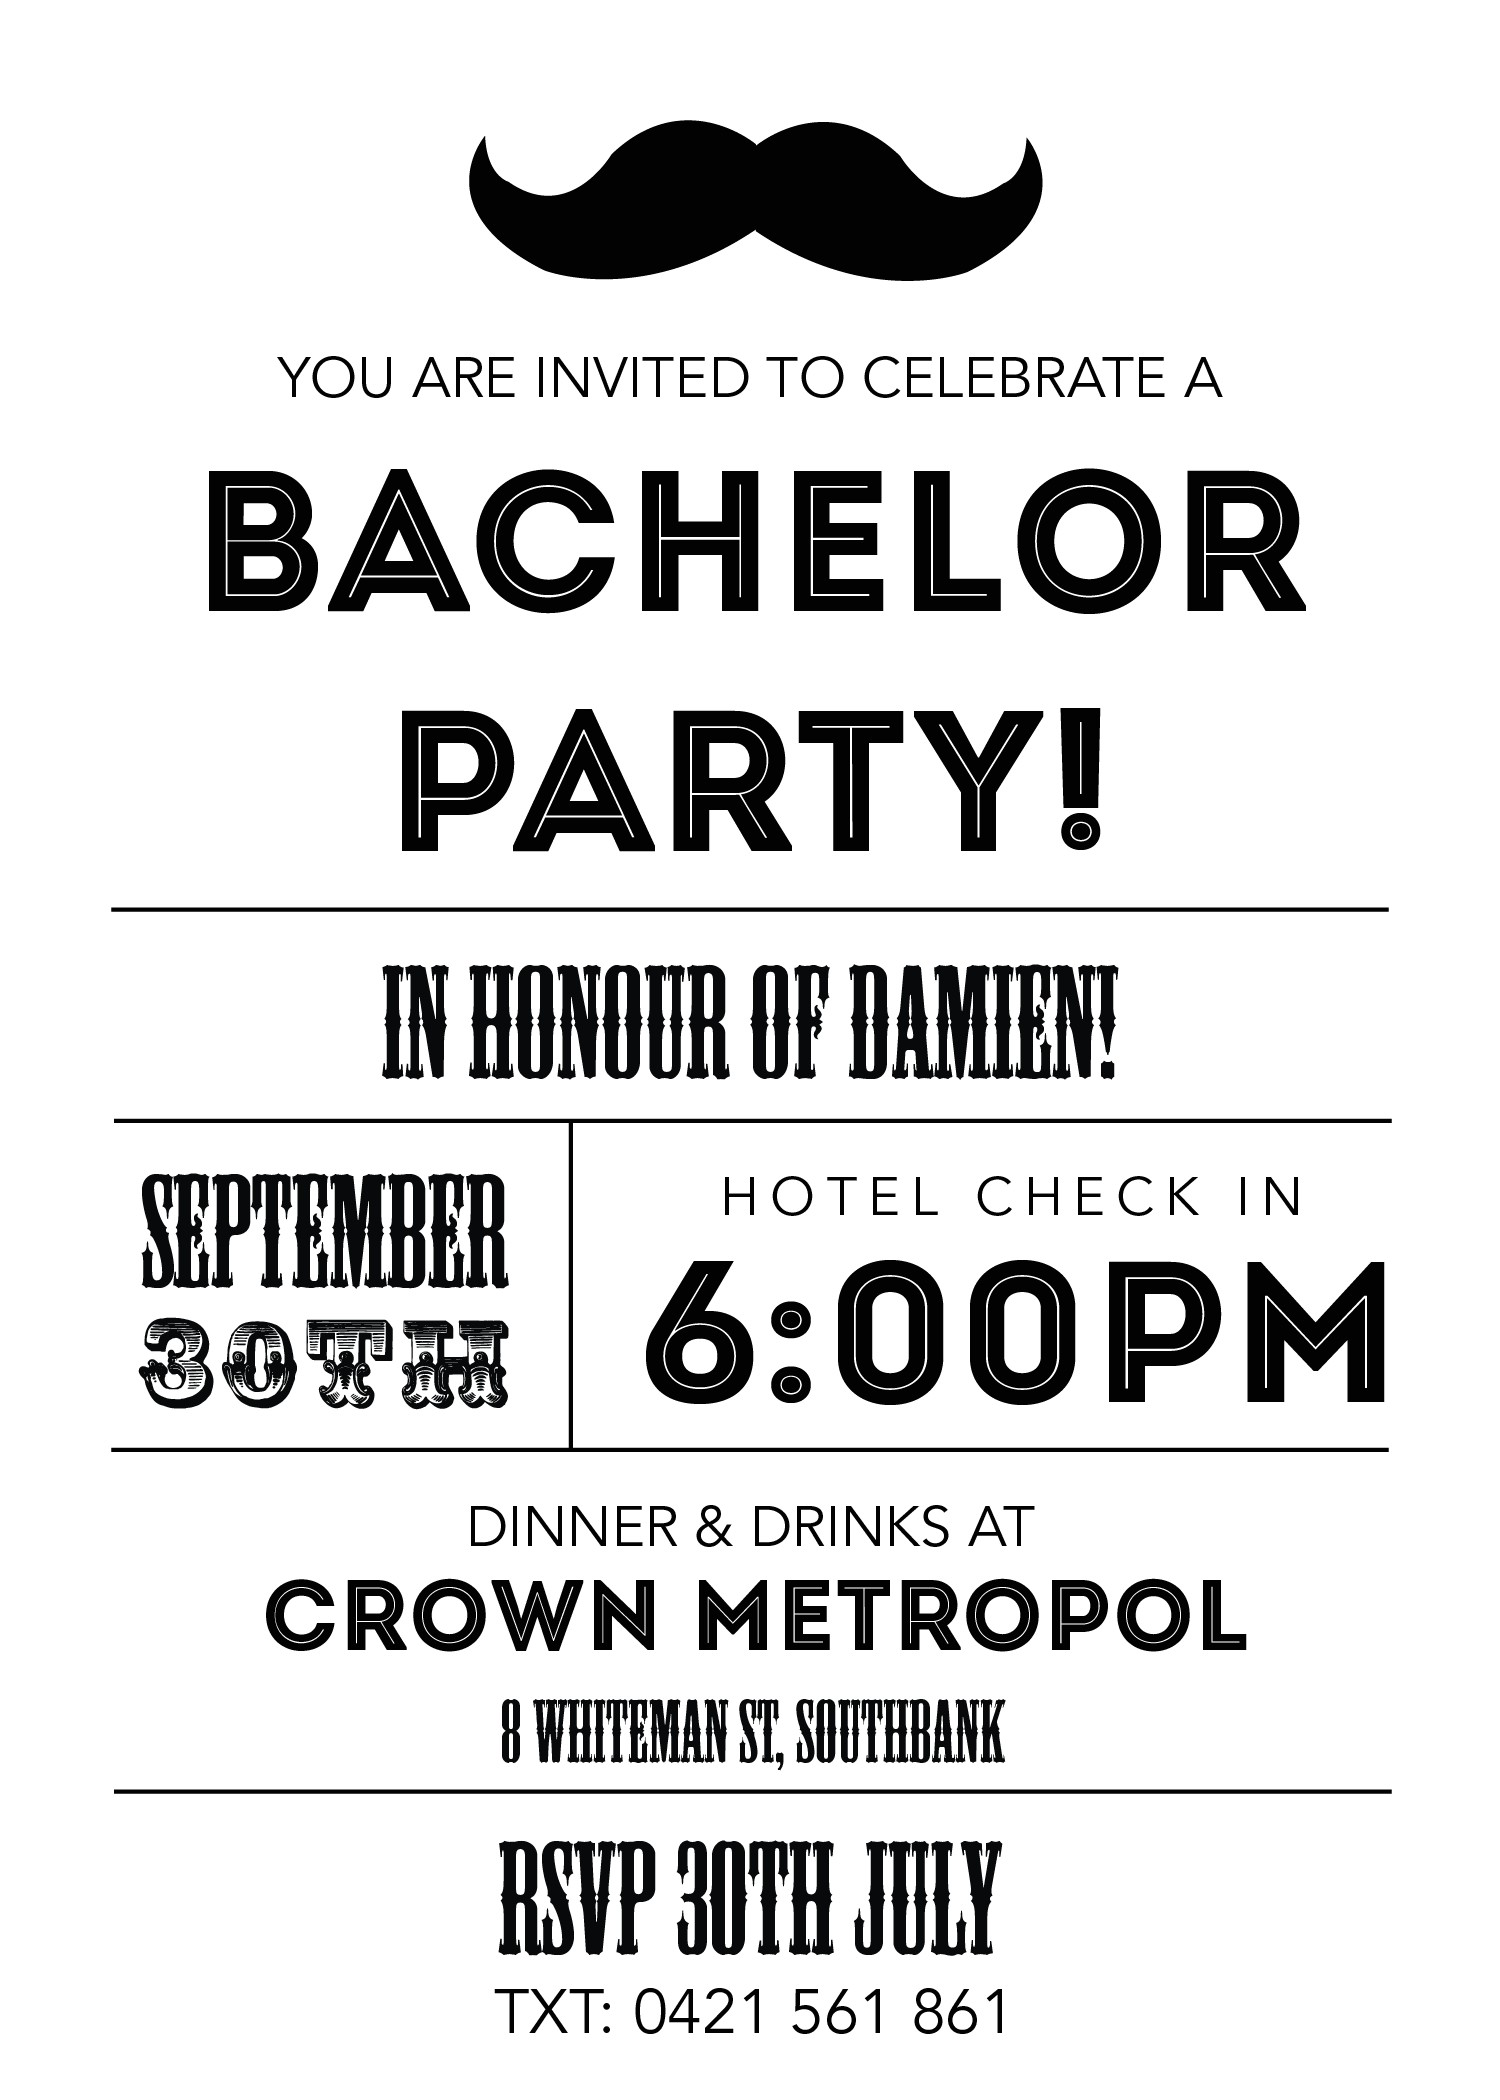 Who Gets Invited to Bachelor Party Bachelor Party Invitations Gangcraft Net